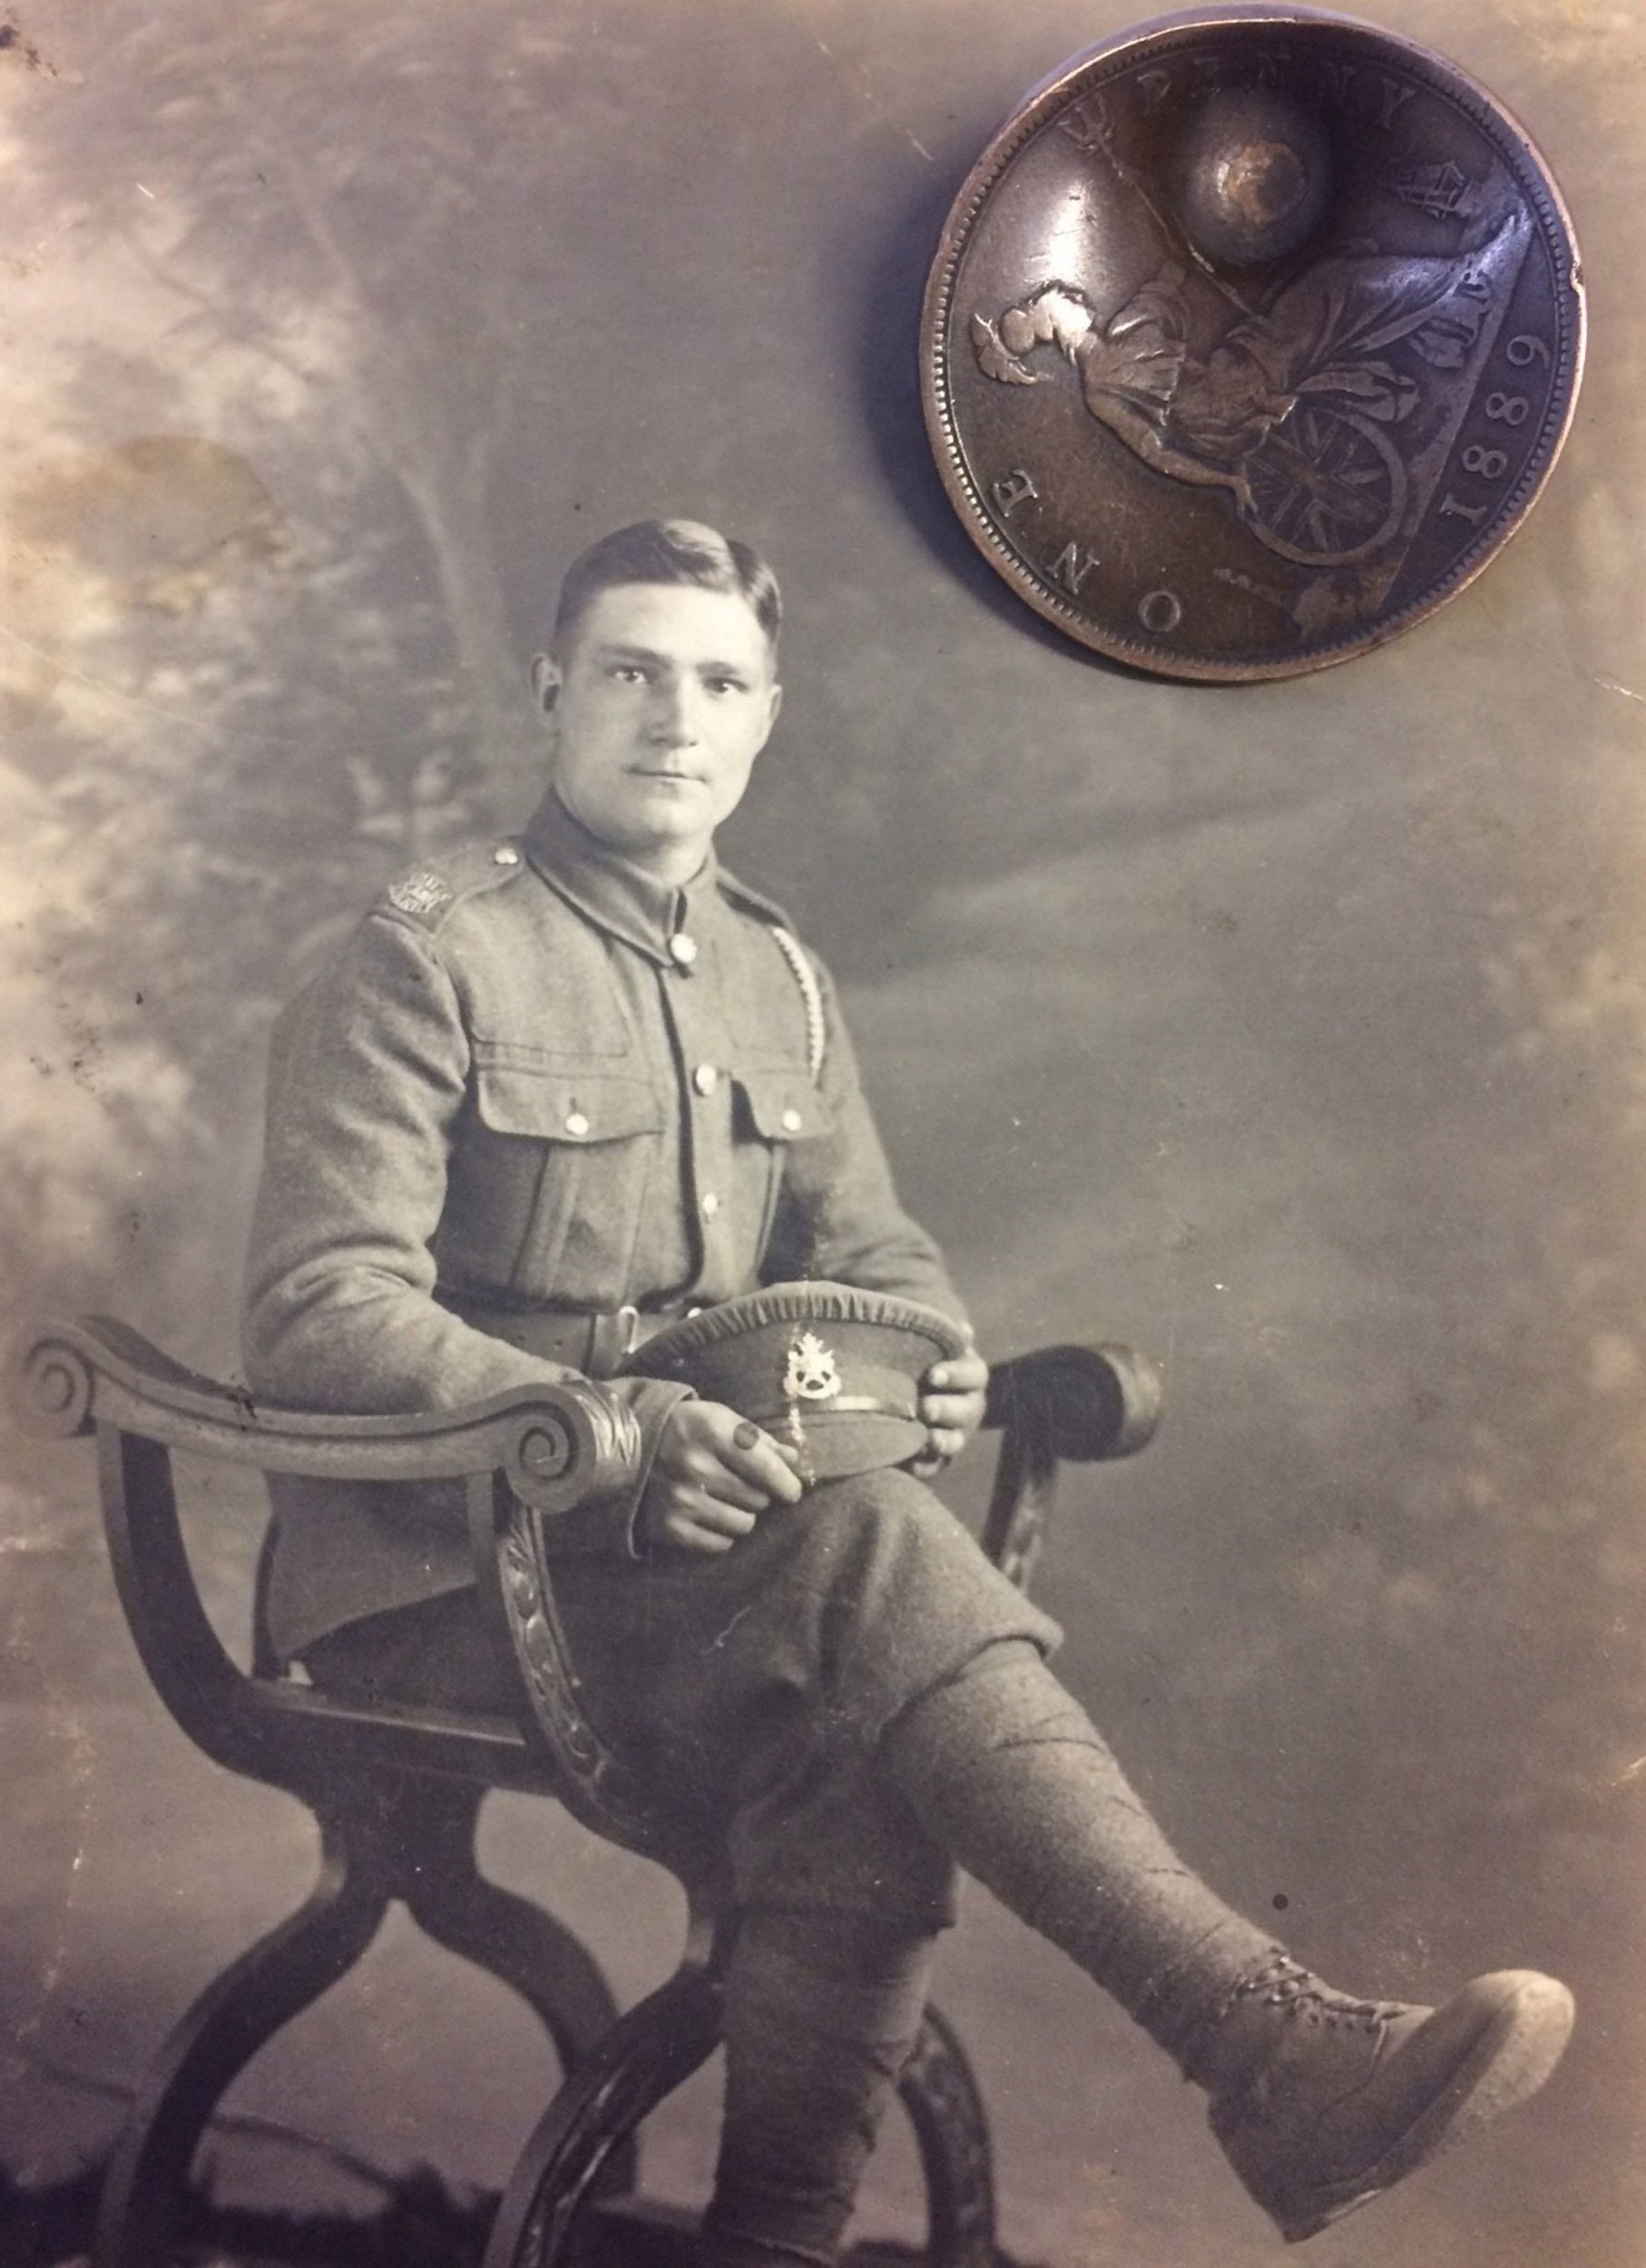 Undated handout photo issued by Hansons Auctioneers of a photograph of Private John Trickett and a dented penny, which deflected an enemy bullet during the First World War One, saving his life, which is due to be sold next week by the Derbyshire-based auction house. PRESS ASSOCIATION Photo. Issue date: Thursday March 14, 2019. Mr Trickett would have been shot in the heart if the bullet ? which still left him deaf ? had not struck the coin in the breast pocket of his uniform. Instead, the round ricocheted through his ear, leading to his honourable discharge from the Northamptonshire Regiment in 1918. See PA story SALE Penny. Photo credit should read: Hansons Auctioneers/PA Wire NOTE TO EDITORS: This handout photo may only be used in for editorial reporting purposes for the contemporaneous illustration of events, things or the people in the image or facts mentioned in the caption. Reuse of the picture may require further permission from the copyright holder.